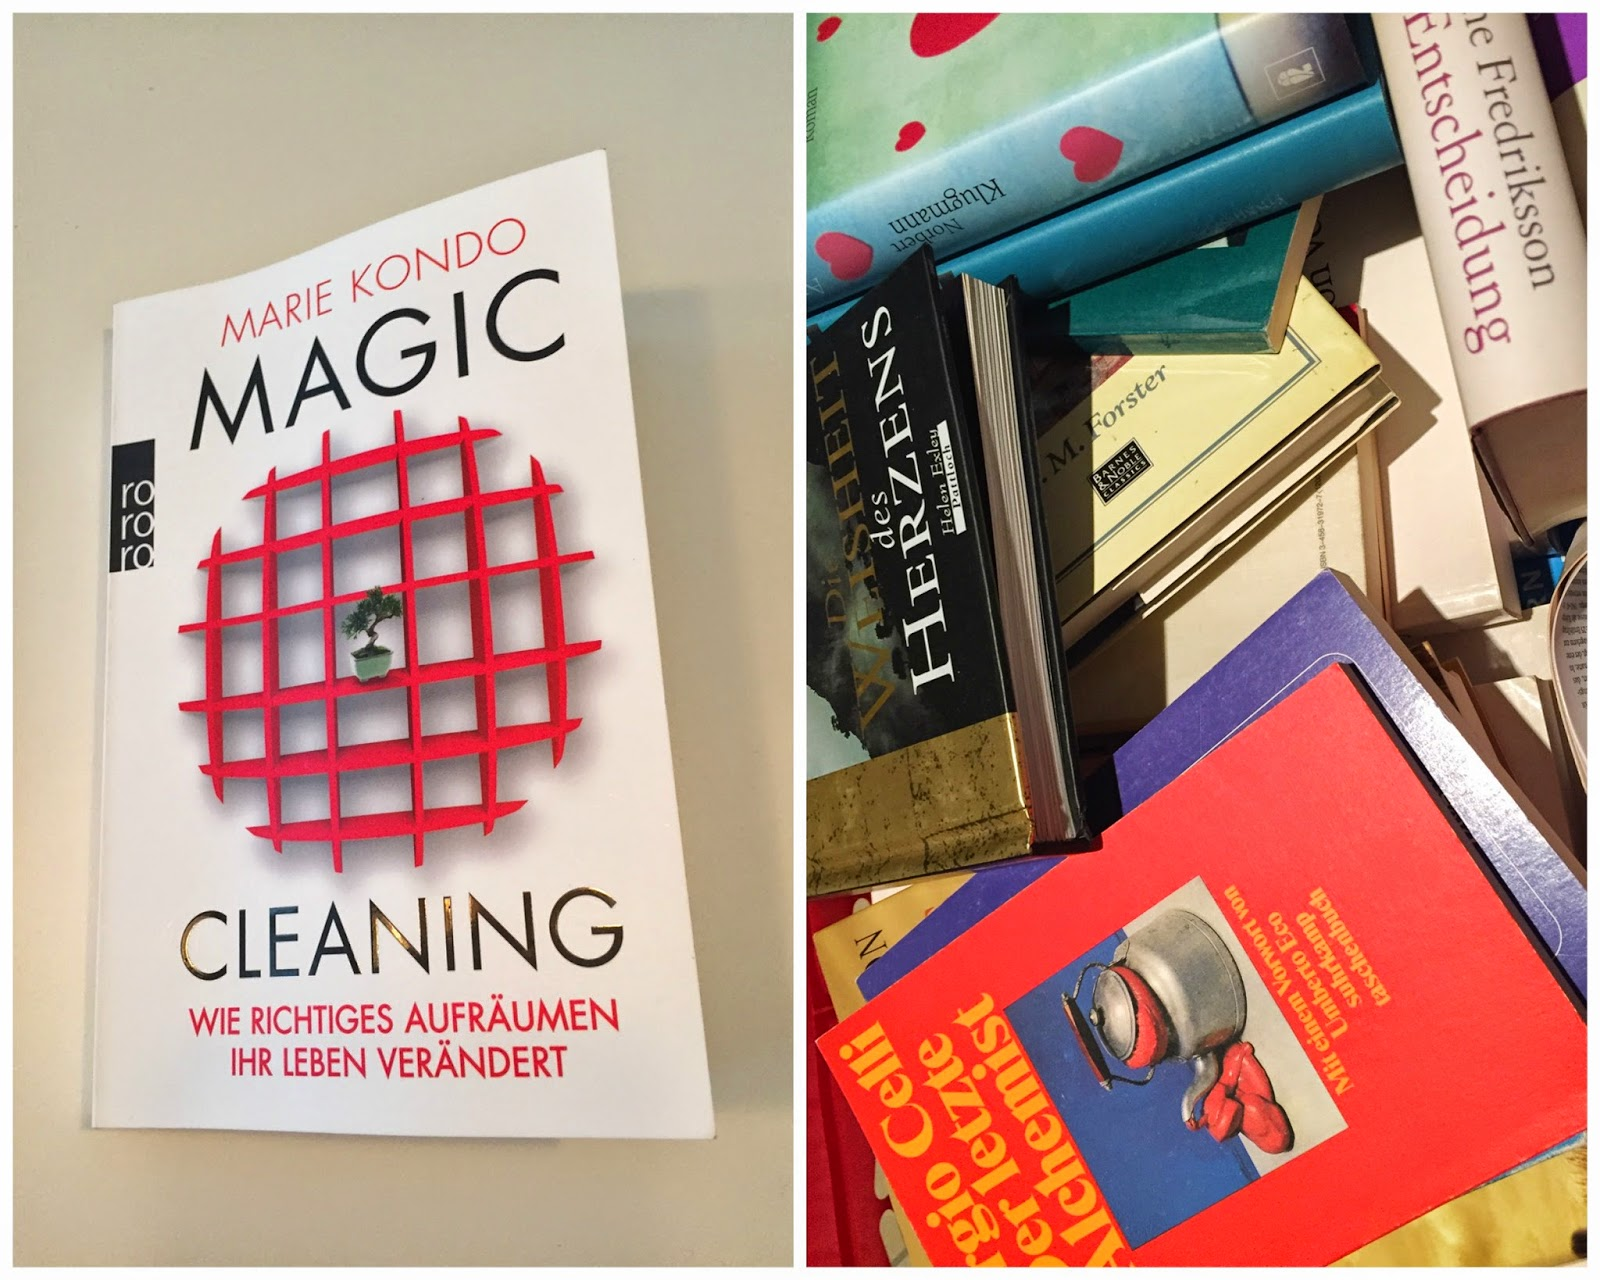 Konmari Methode Küche Buch Tipp Marie Kondo Magic Cleaning Wie Richtiges